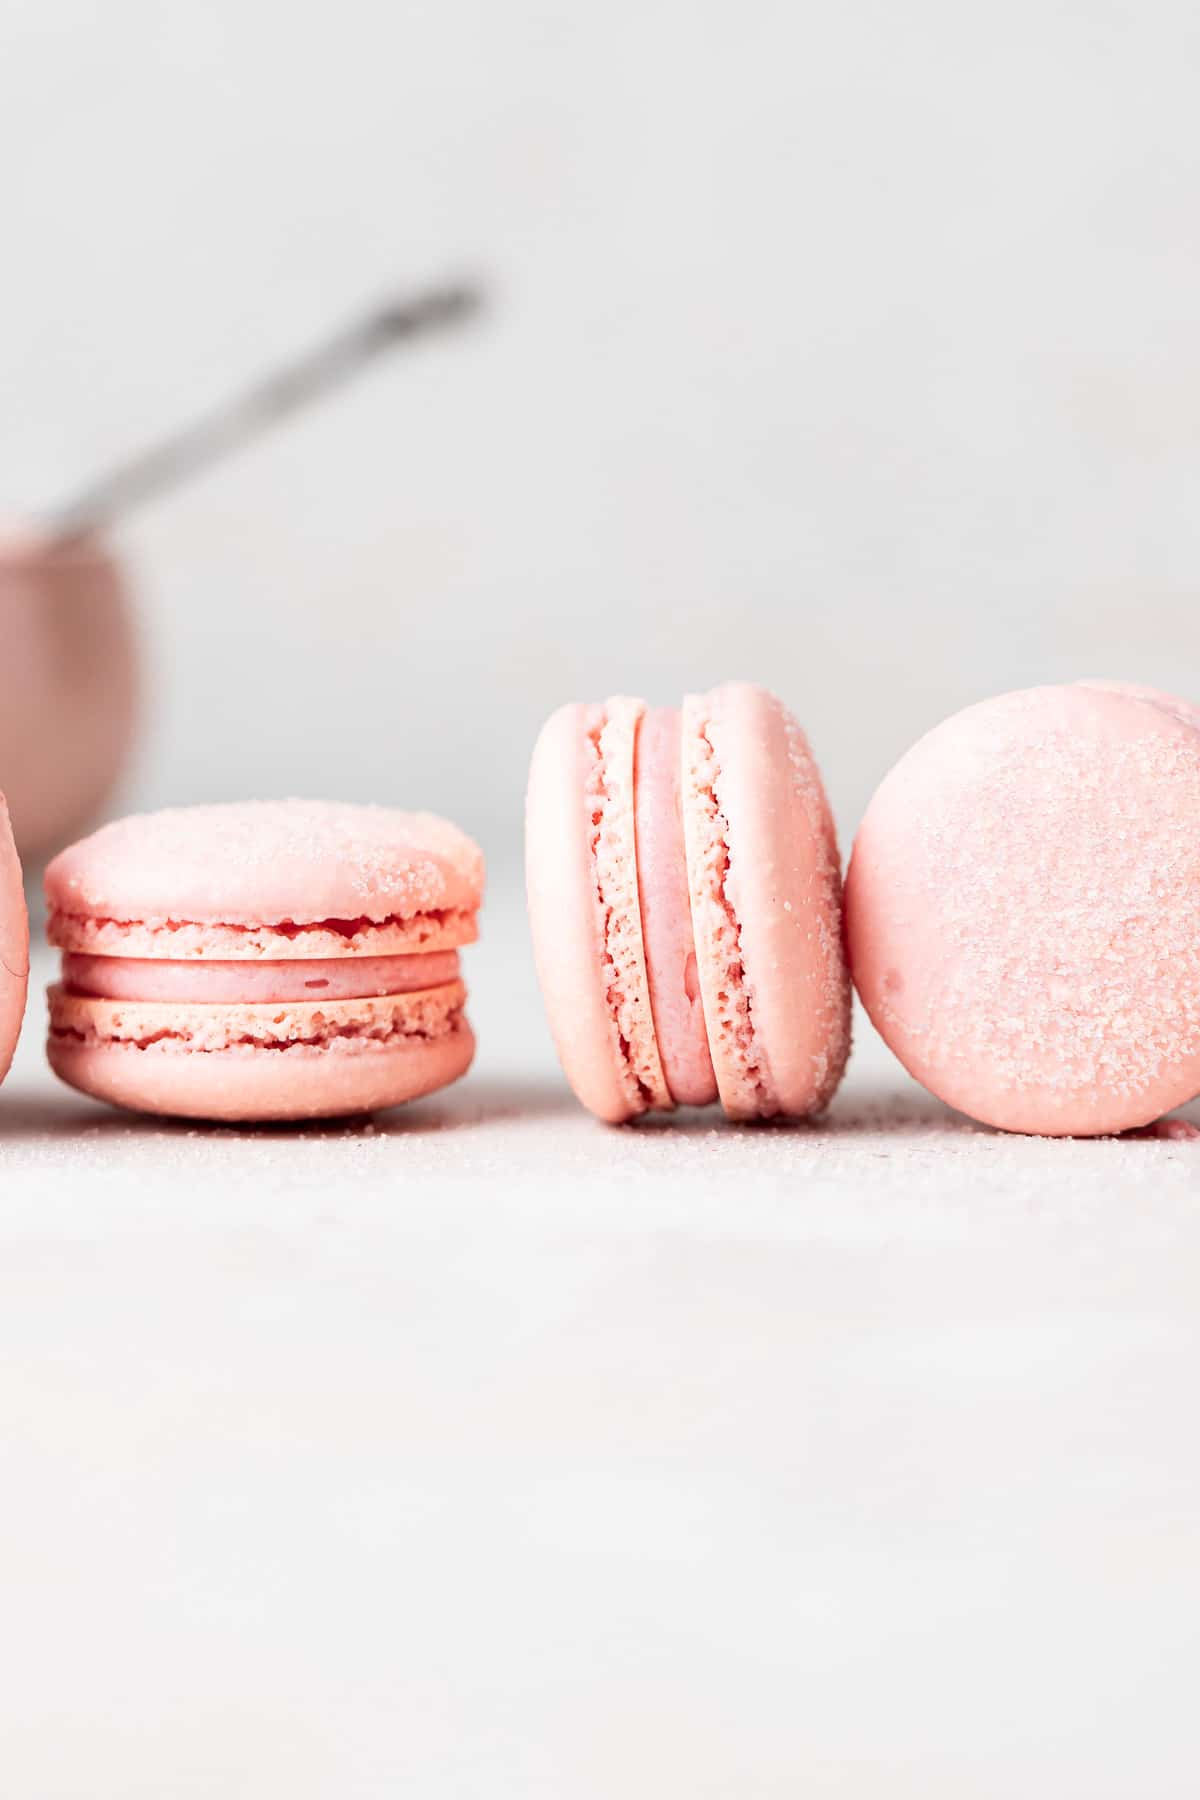 a few macarons on their sides